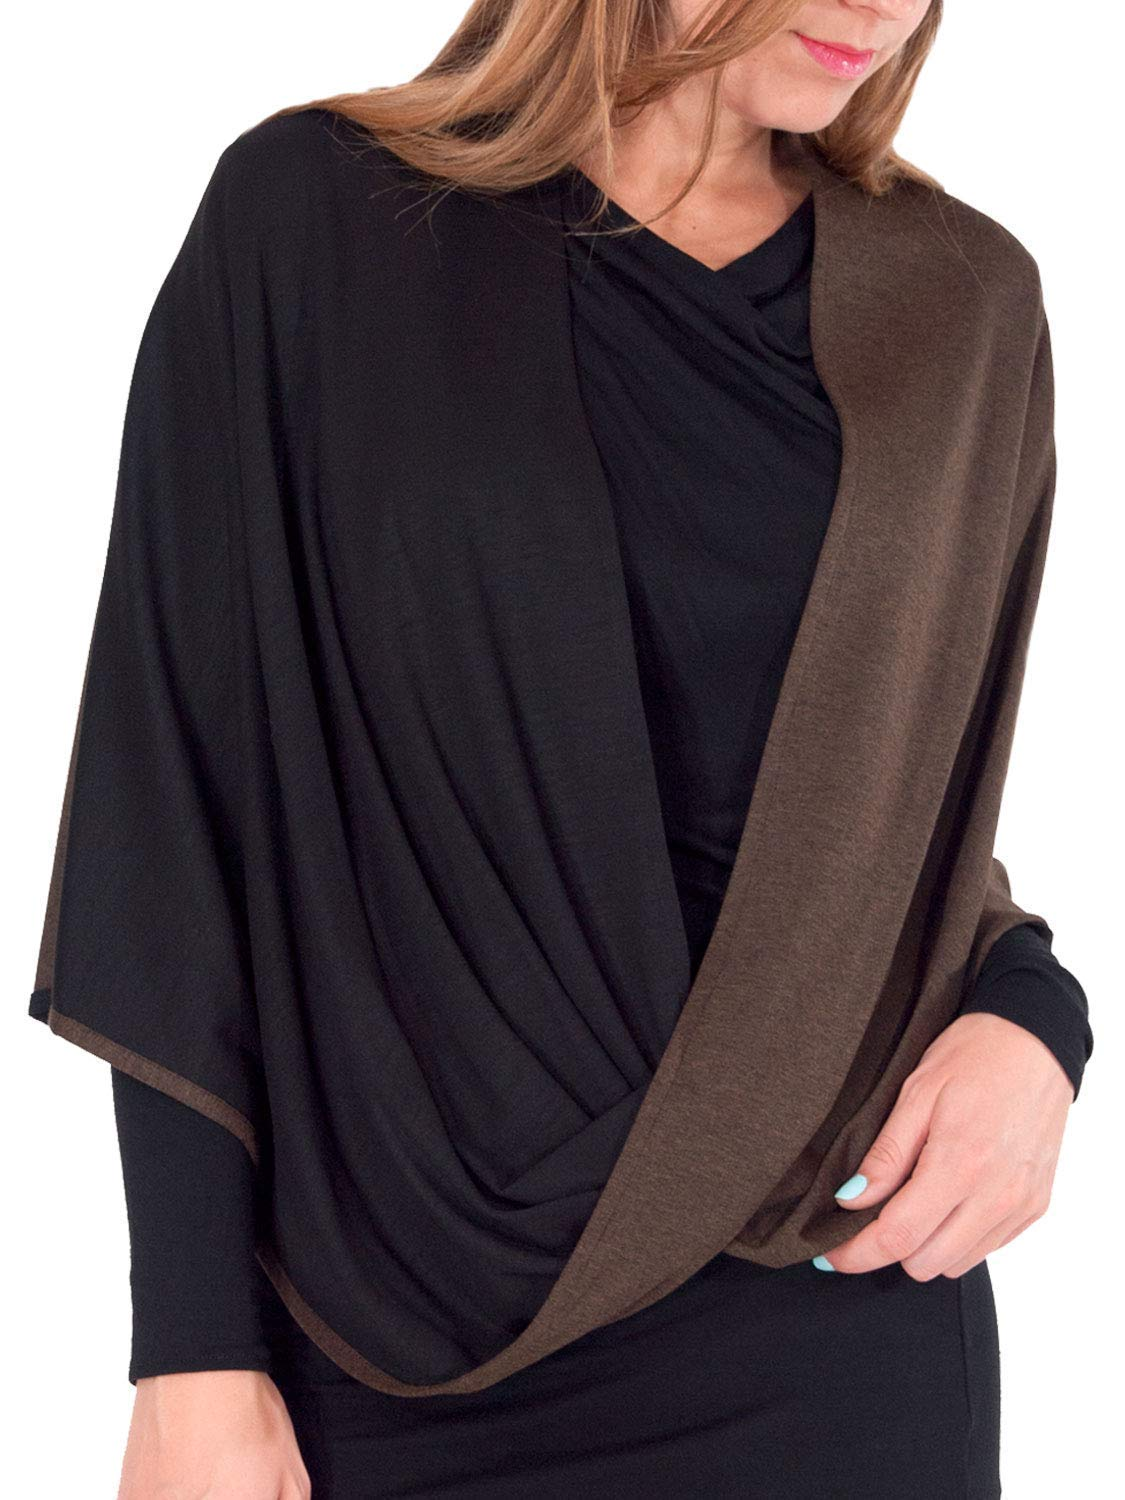 Beryl Infinity Shawl and Scarf - Luxuriously Soft 2-Tone Black and Walnut Brown Shawl from Erin Draper. Made in USA. (Medium Length)